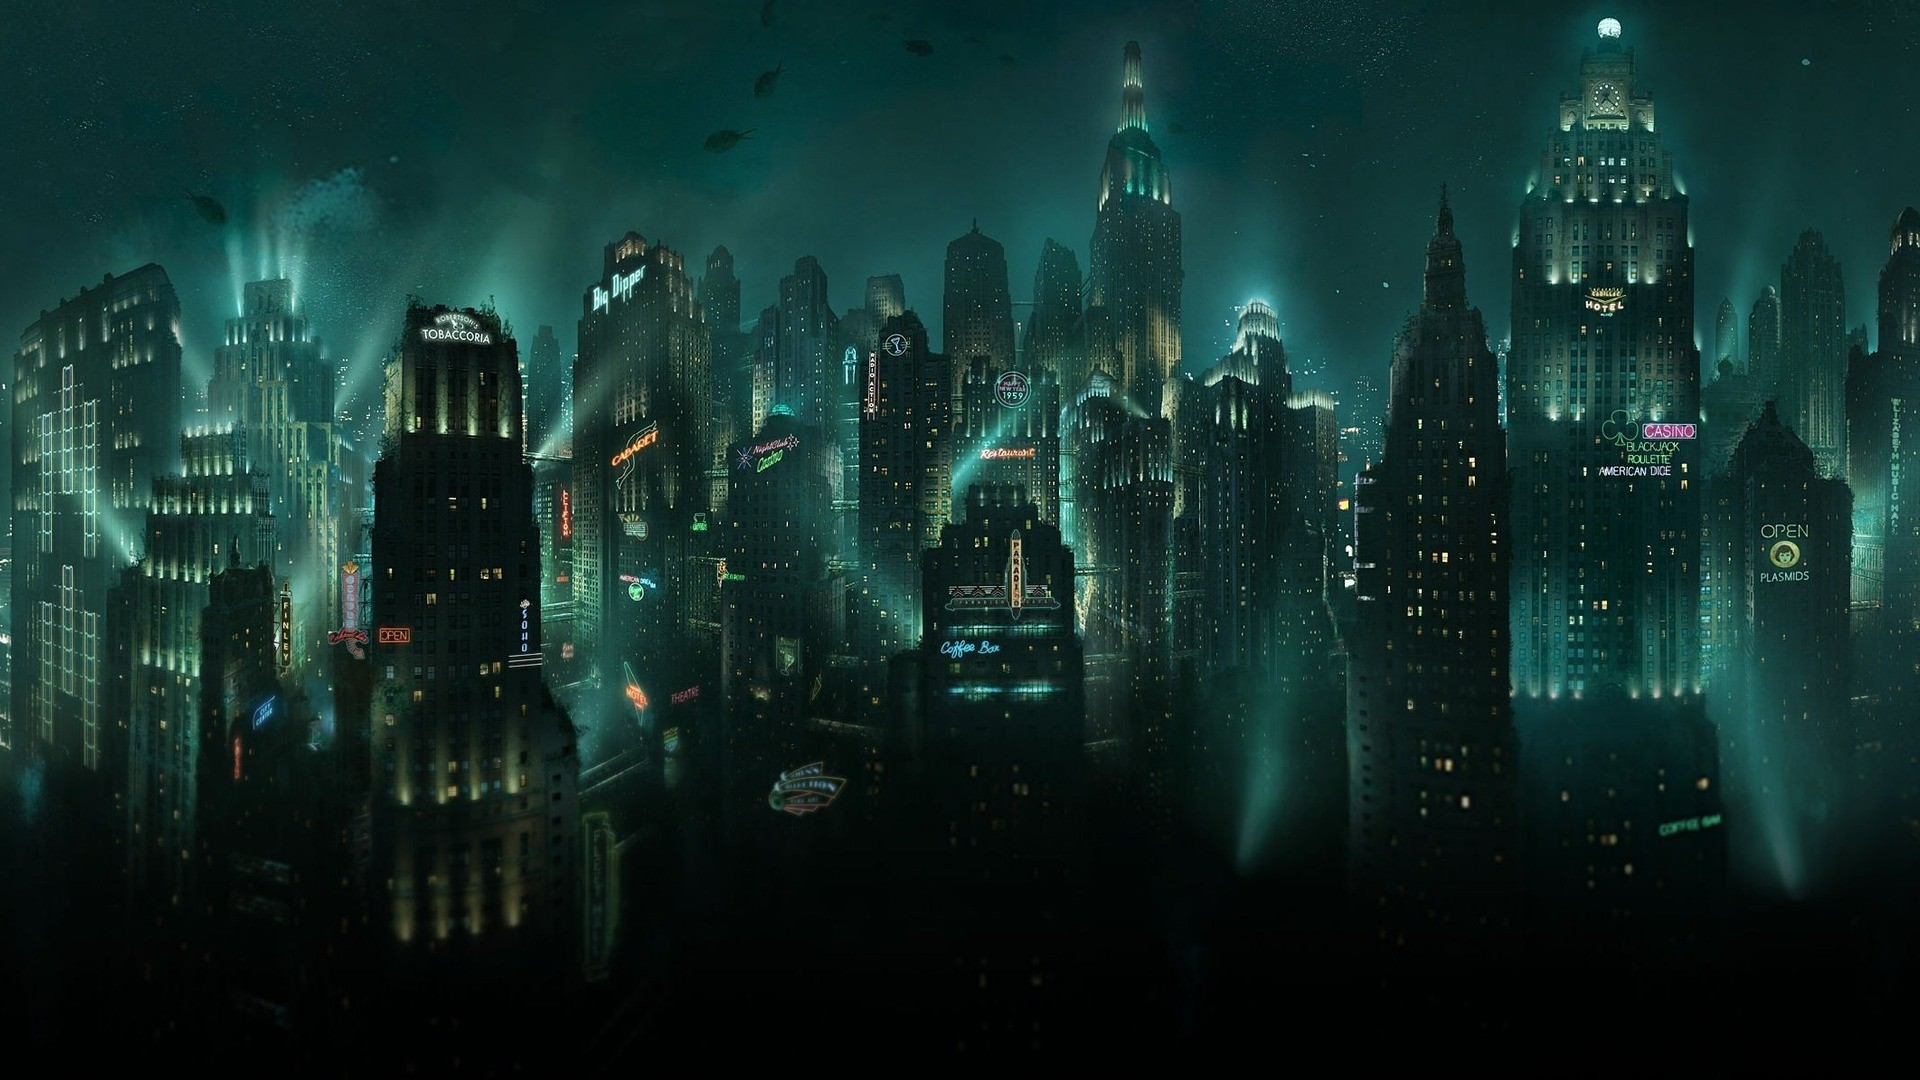 Sci Fi - City  - Bioshock - Night Wallpaper